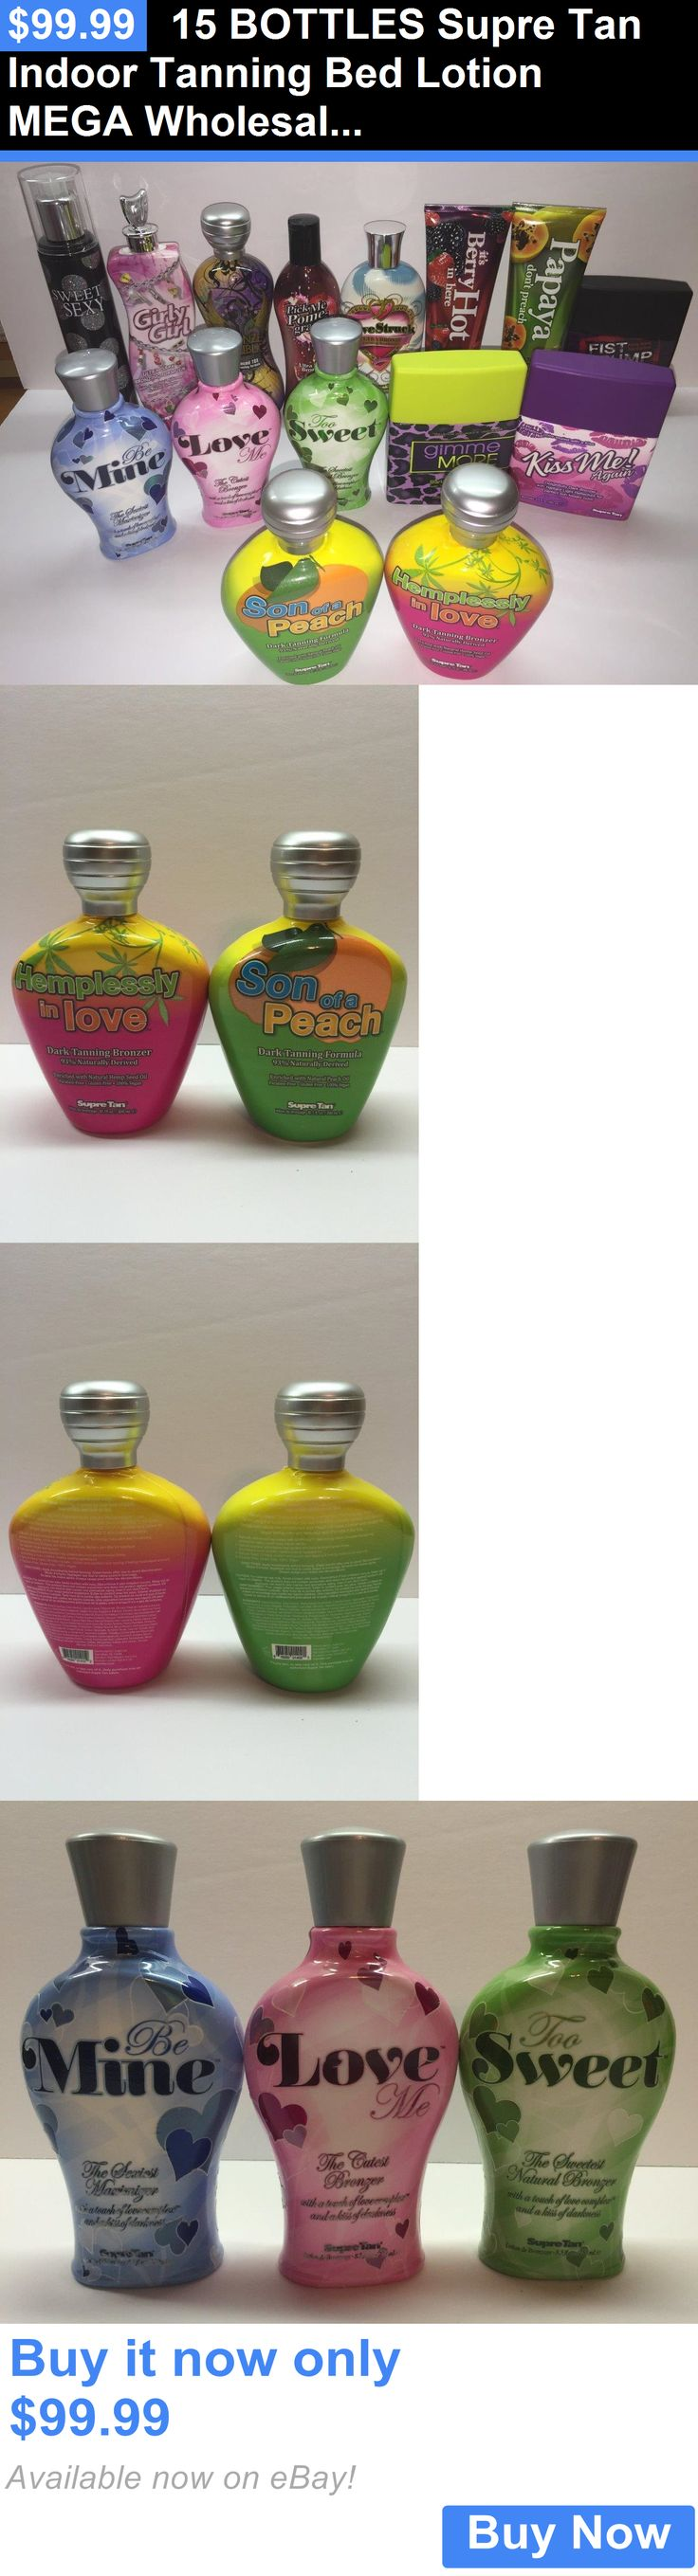 Tanning Lotion: 15 Bottles Supre Tan Indoor Tanning Bed Lotion Mega Wholesale Lot $657 Retail BUY IT NOW ONLY: $99.99